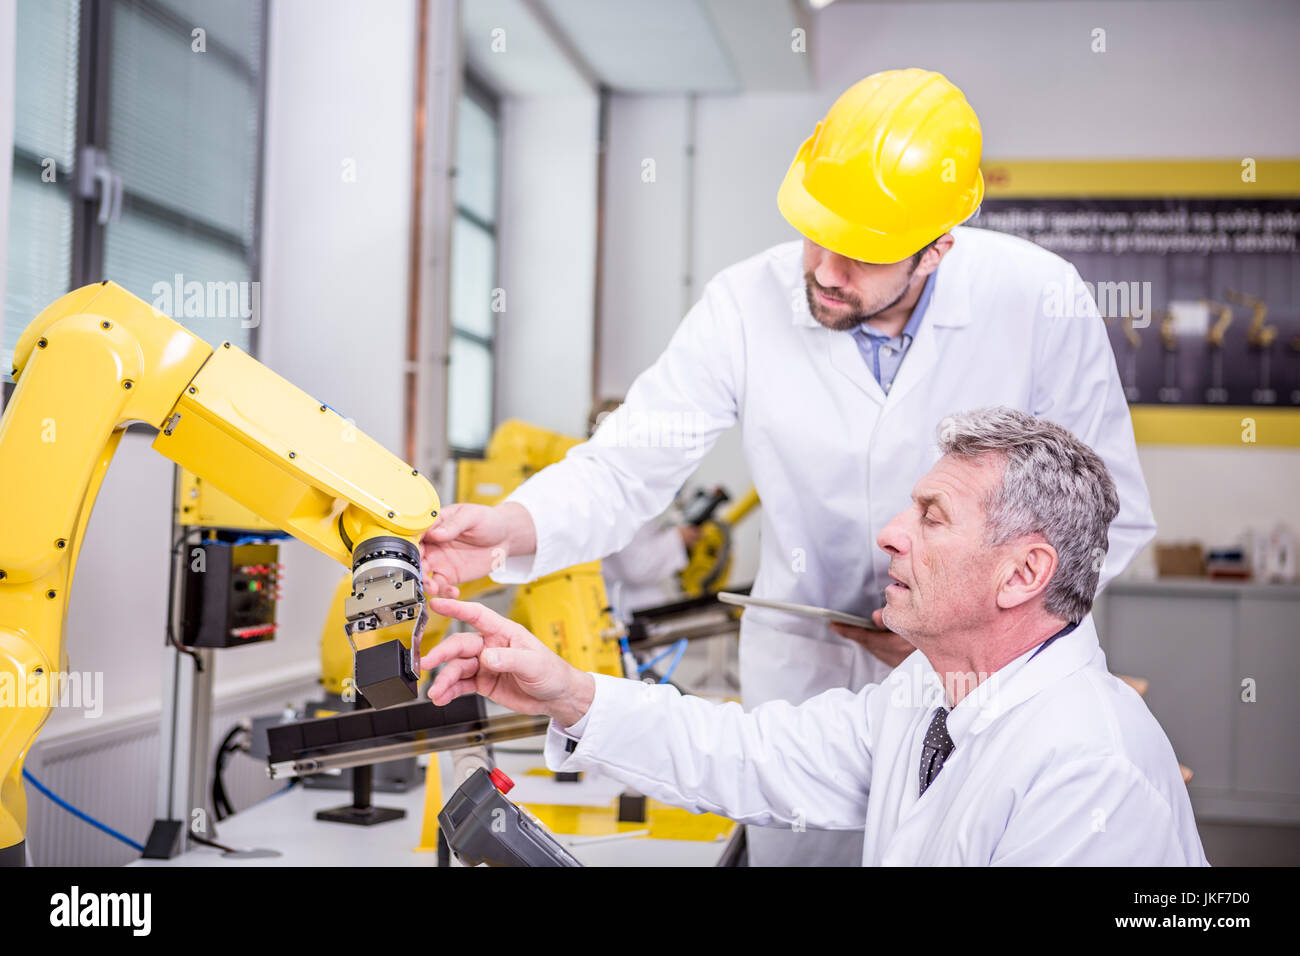 Two engineers examining industrial robot - Stock Image